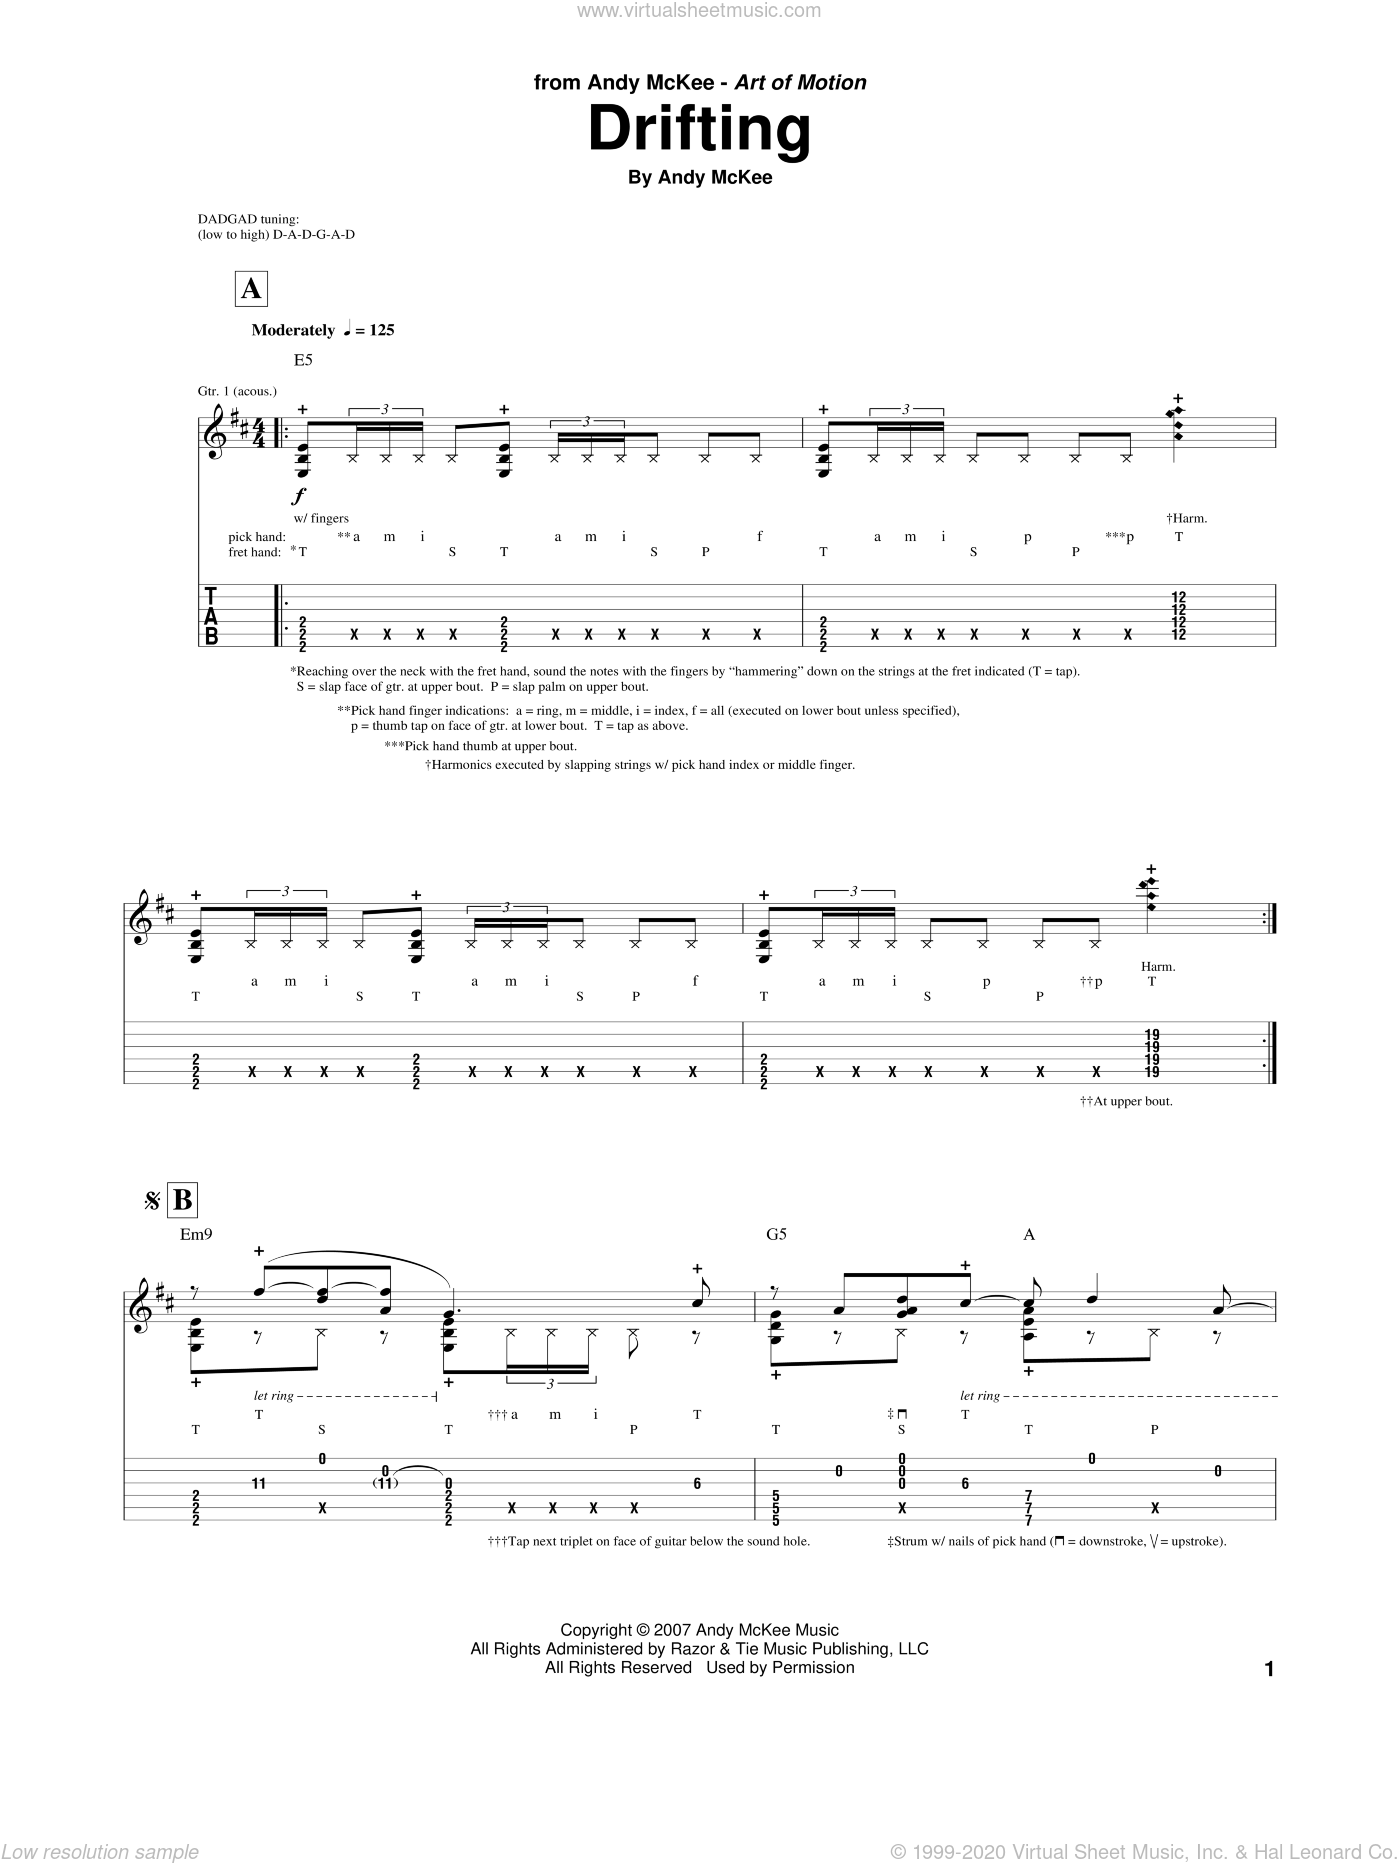 Drifting sheet music for guitar (tablature) by Andy McKee